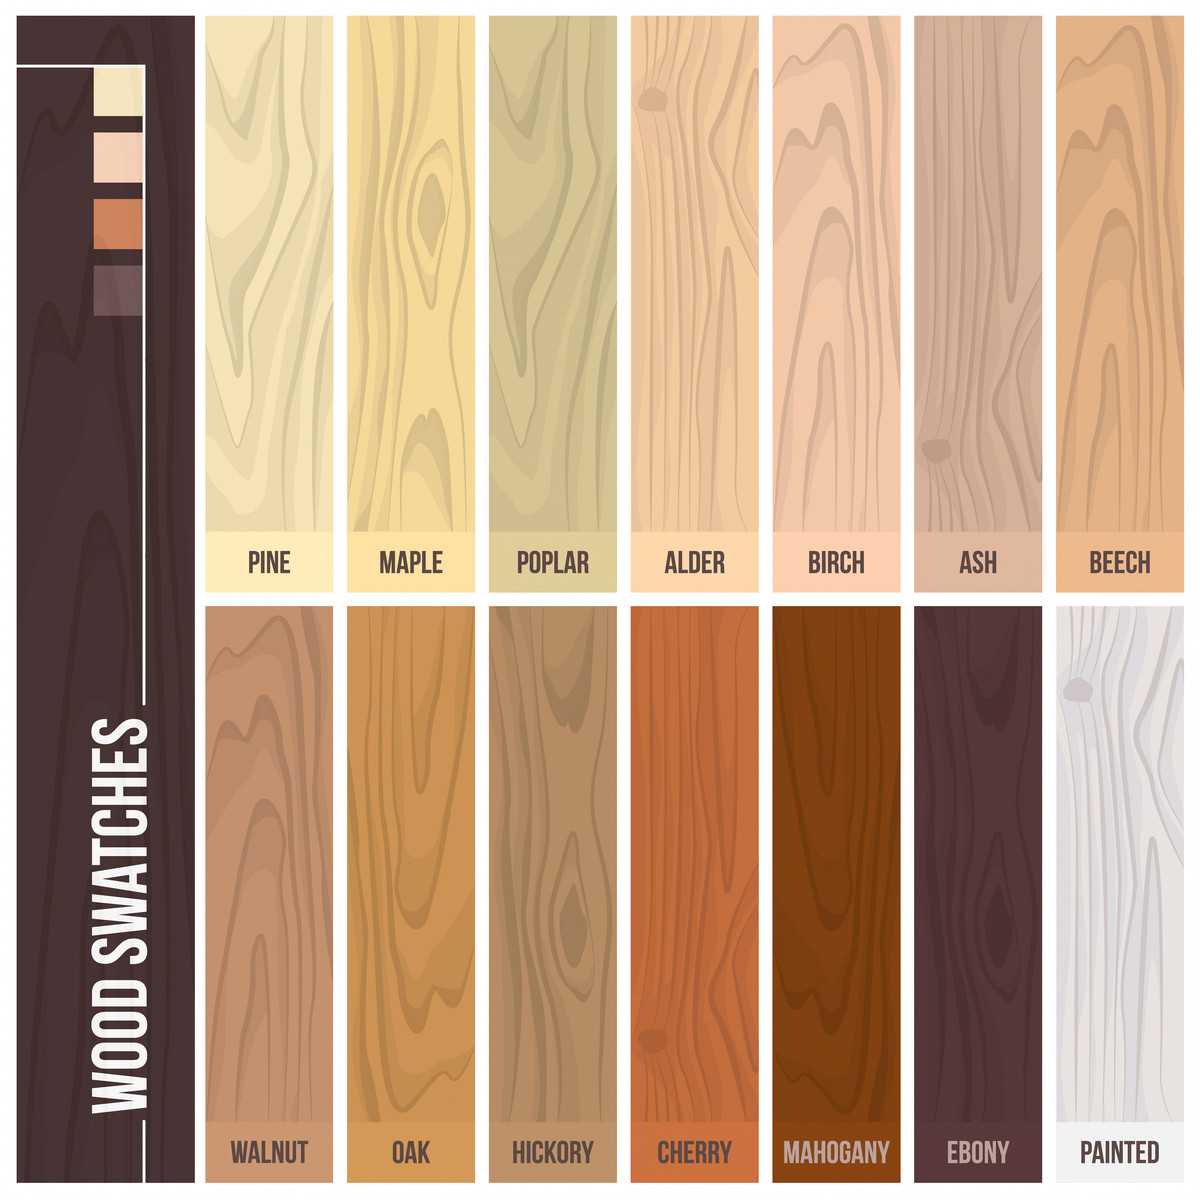 hardwood flooring price per square metre of 12 types of hardwood flooring species styles edging dimensions inside types of hardwood flooring illustrated guide